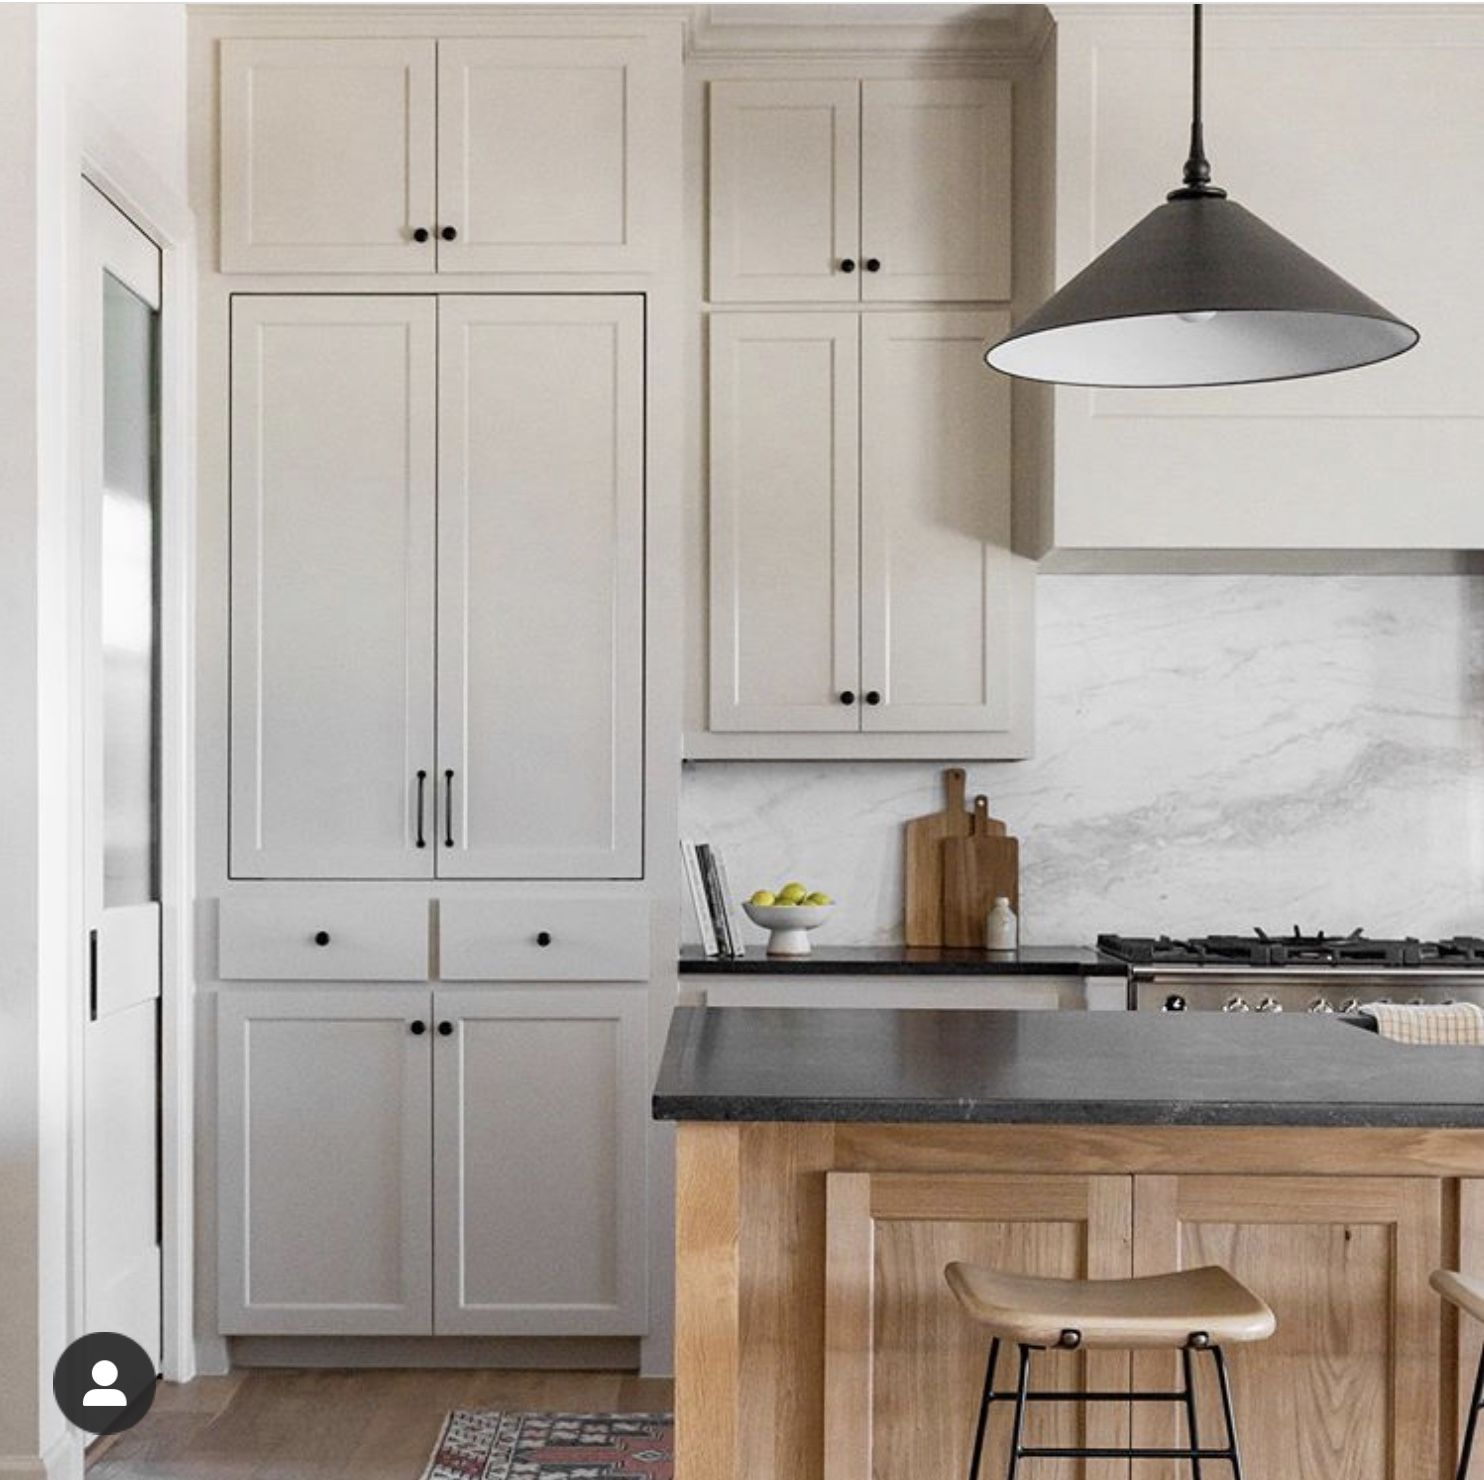 Pin By One 3rd Living On Kitchen In 2020 Neutral Kitchen Kitchen Tall Cabinet Storage